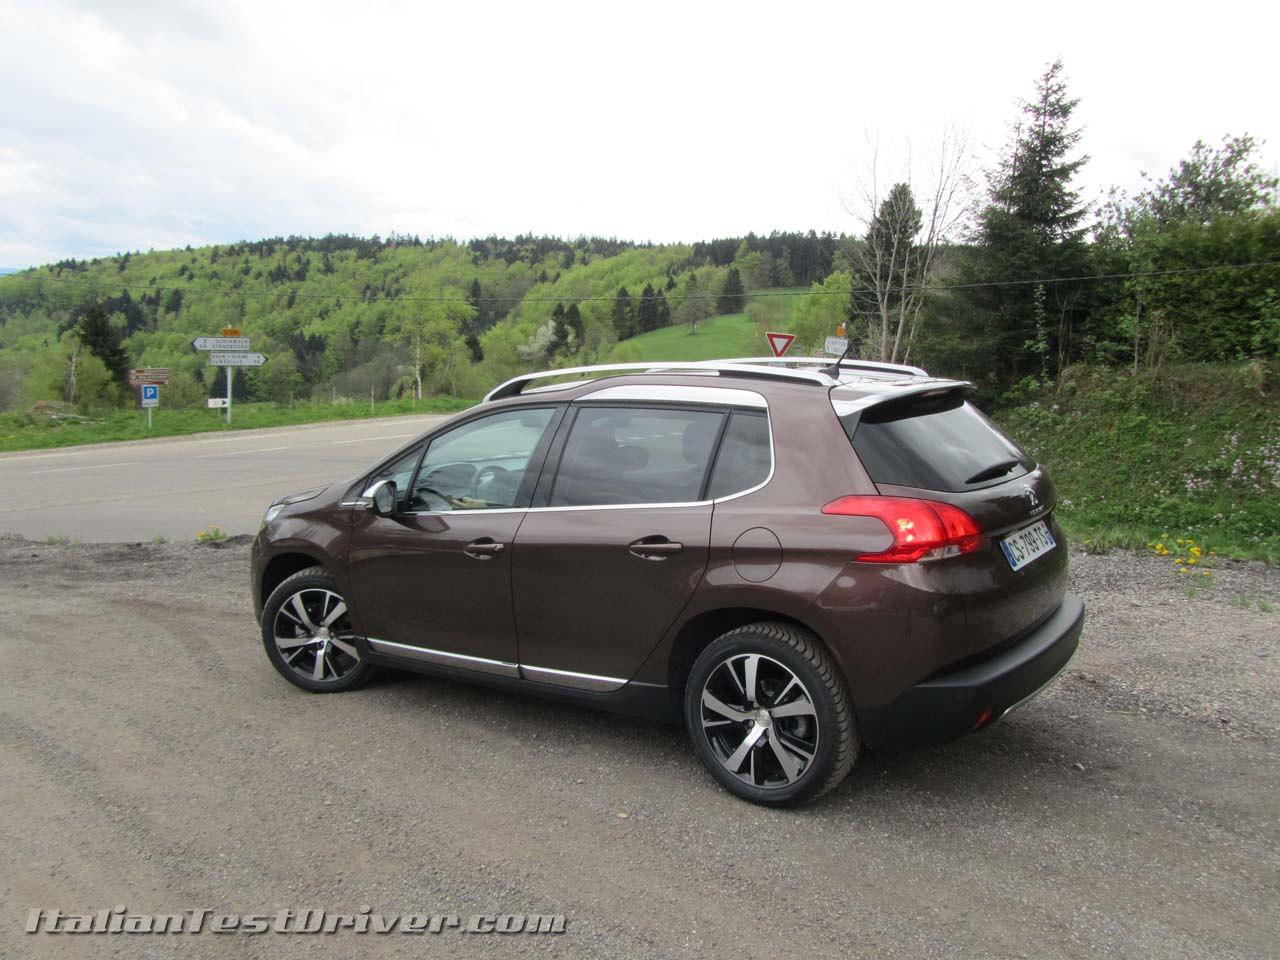 peugeot 2008 1 2 vti gallery prices worldwide for cars bikes laptops etc. Black Bedroom Furniture Sets. Home Design Ideas